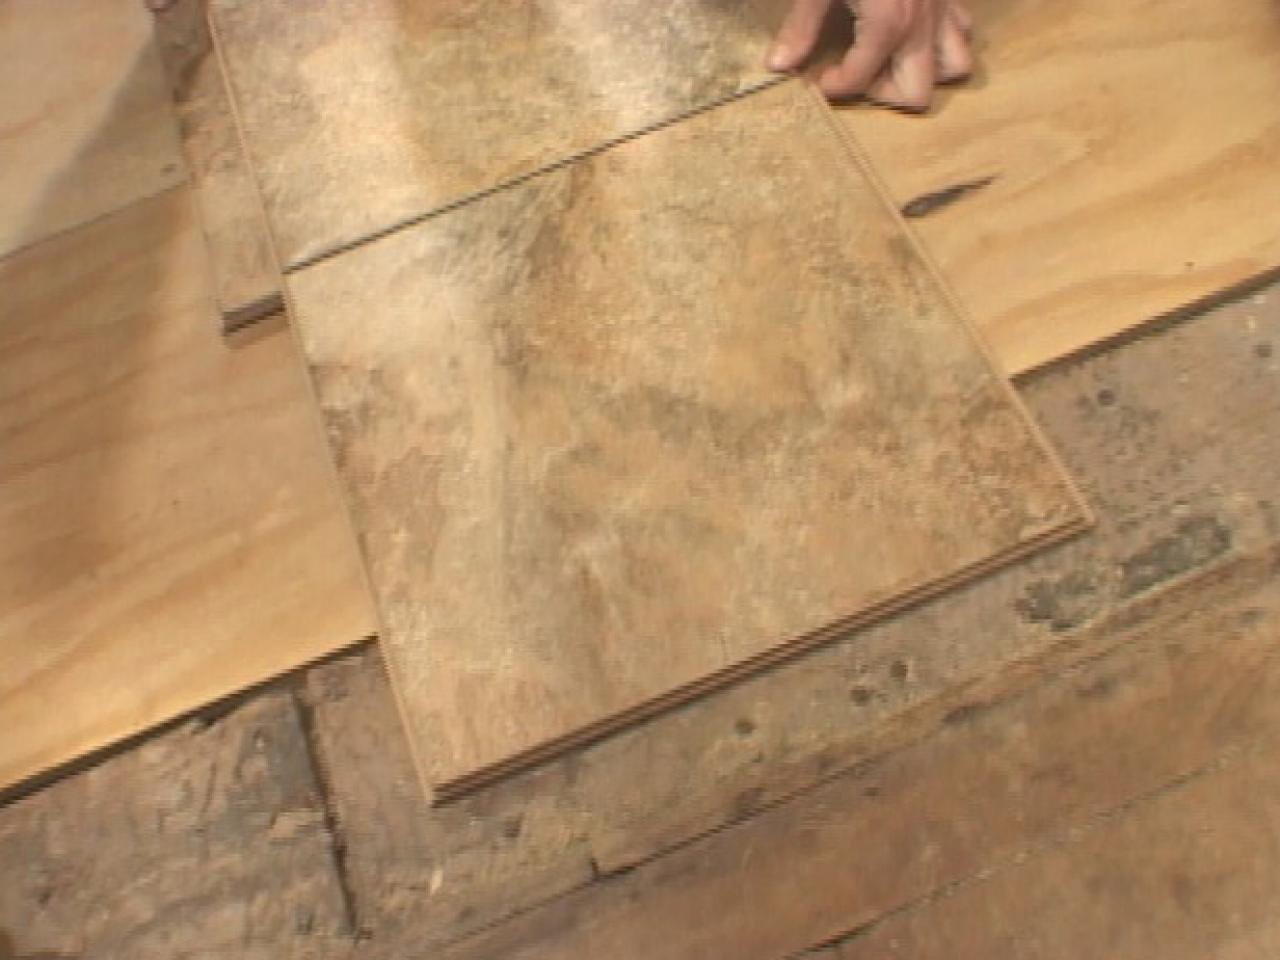 How to install snap together tile flooring how tos diy dry fit tiles to determine layout dailygadgetfo Gallery